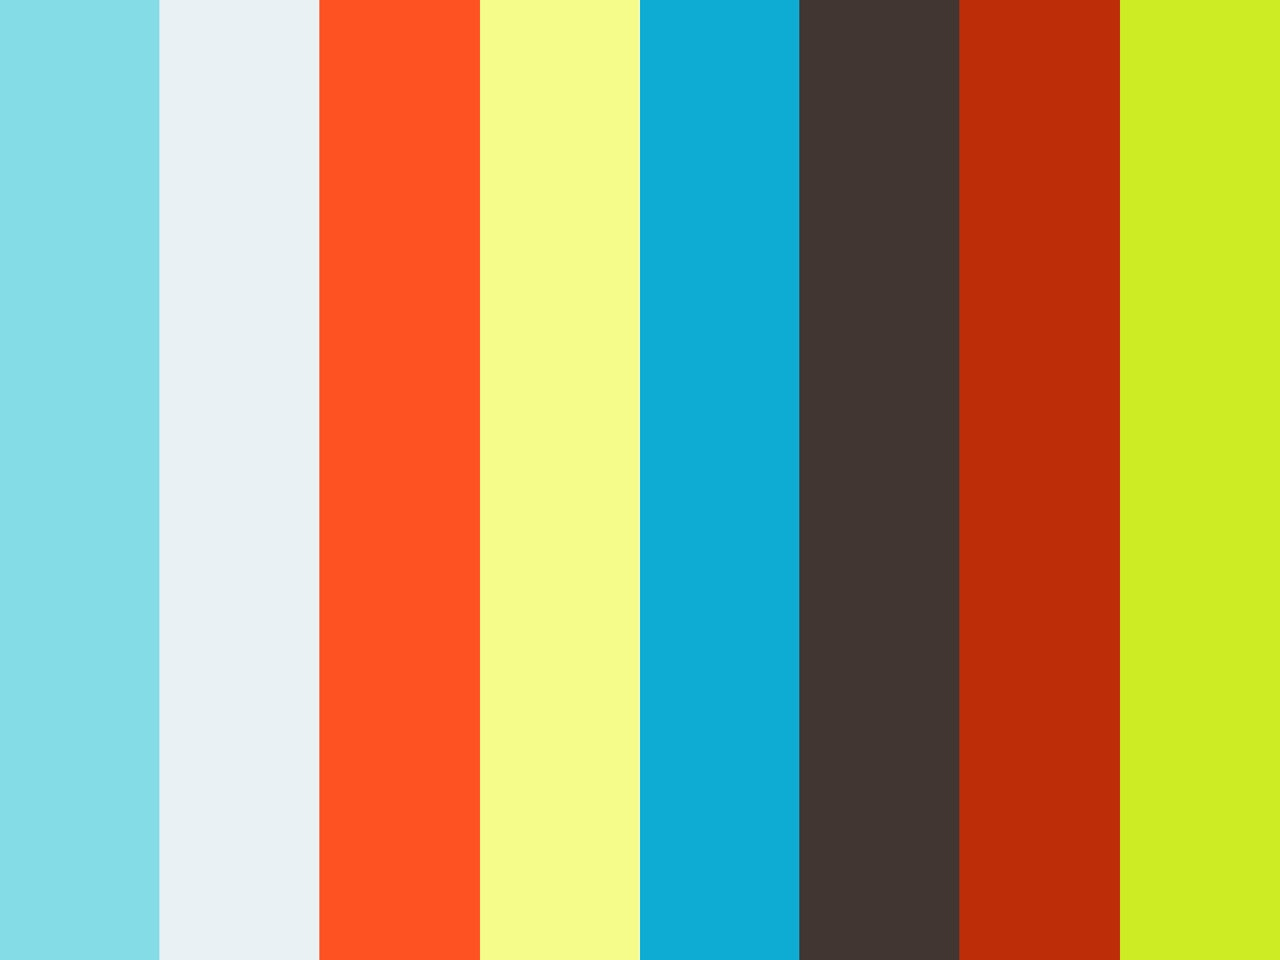 July 29, 2018 | Samuel 16:4-13 | Daryl Jones